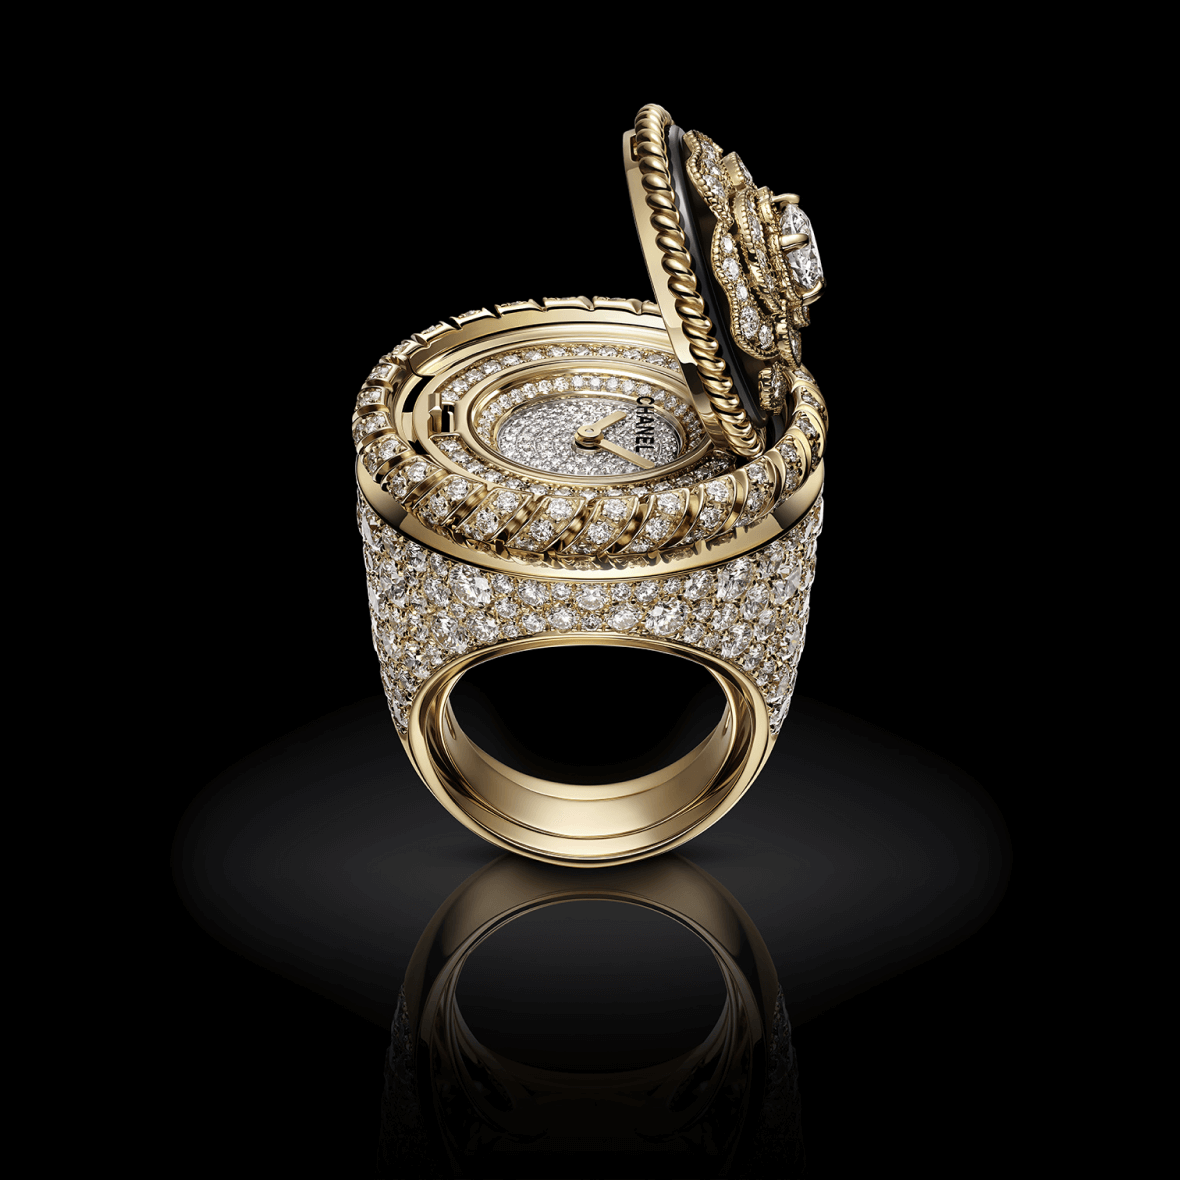 H7073 Mademoiselle Privé Bouton ring open view